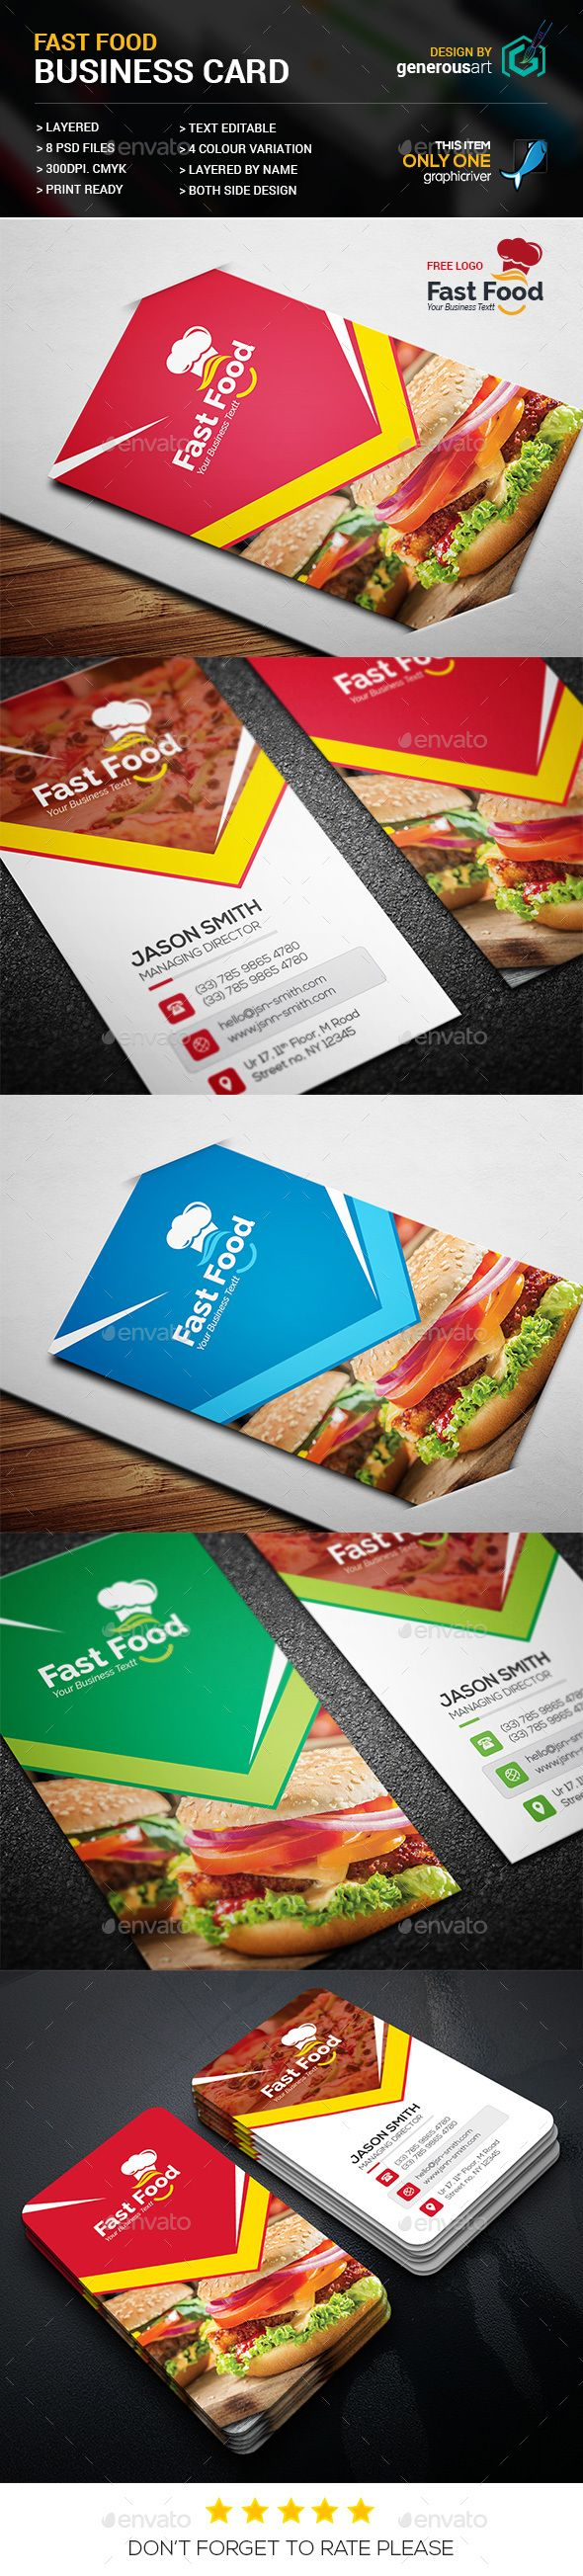 Fast Food Business Card Template PSD. Download here: https://graphicriver.net/item/fast-food-business-card/17513699?ref=ksioks